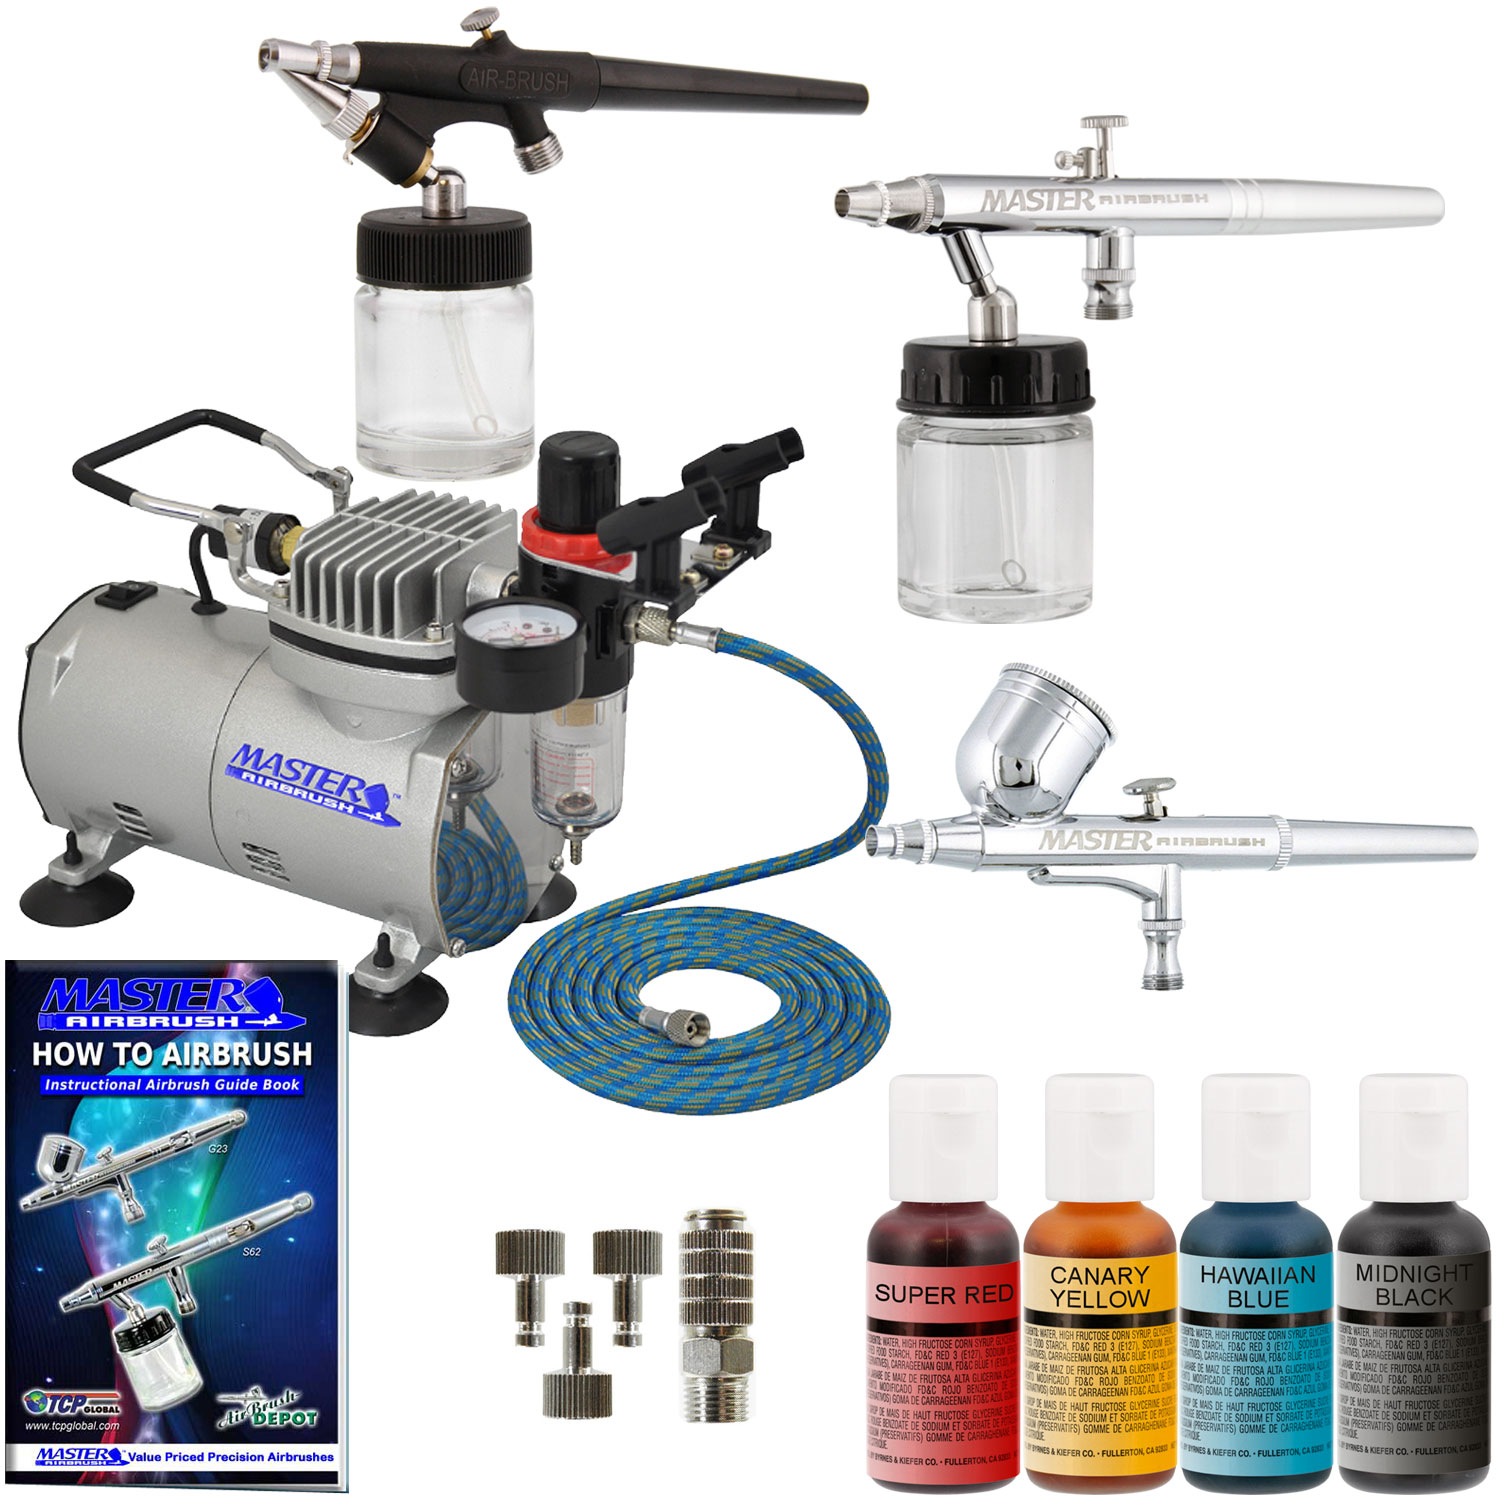 3 Airbrush Cake Decorating Compressor Kit, 4 Color Chefmaster Food ...